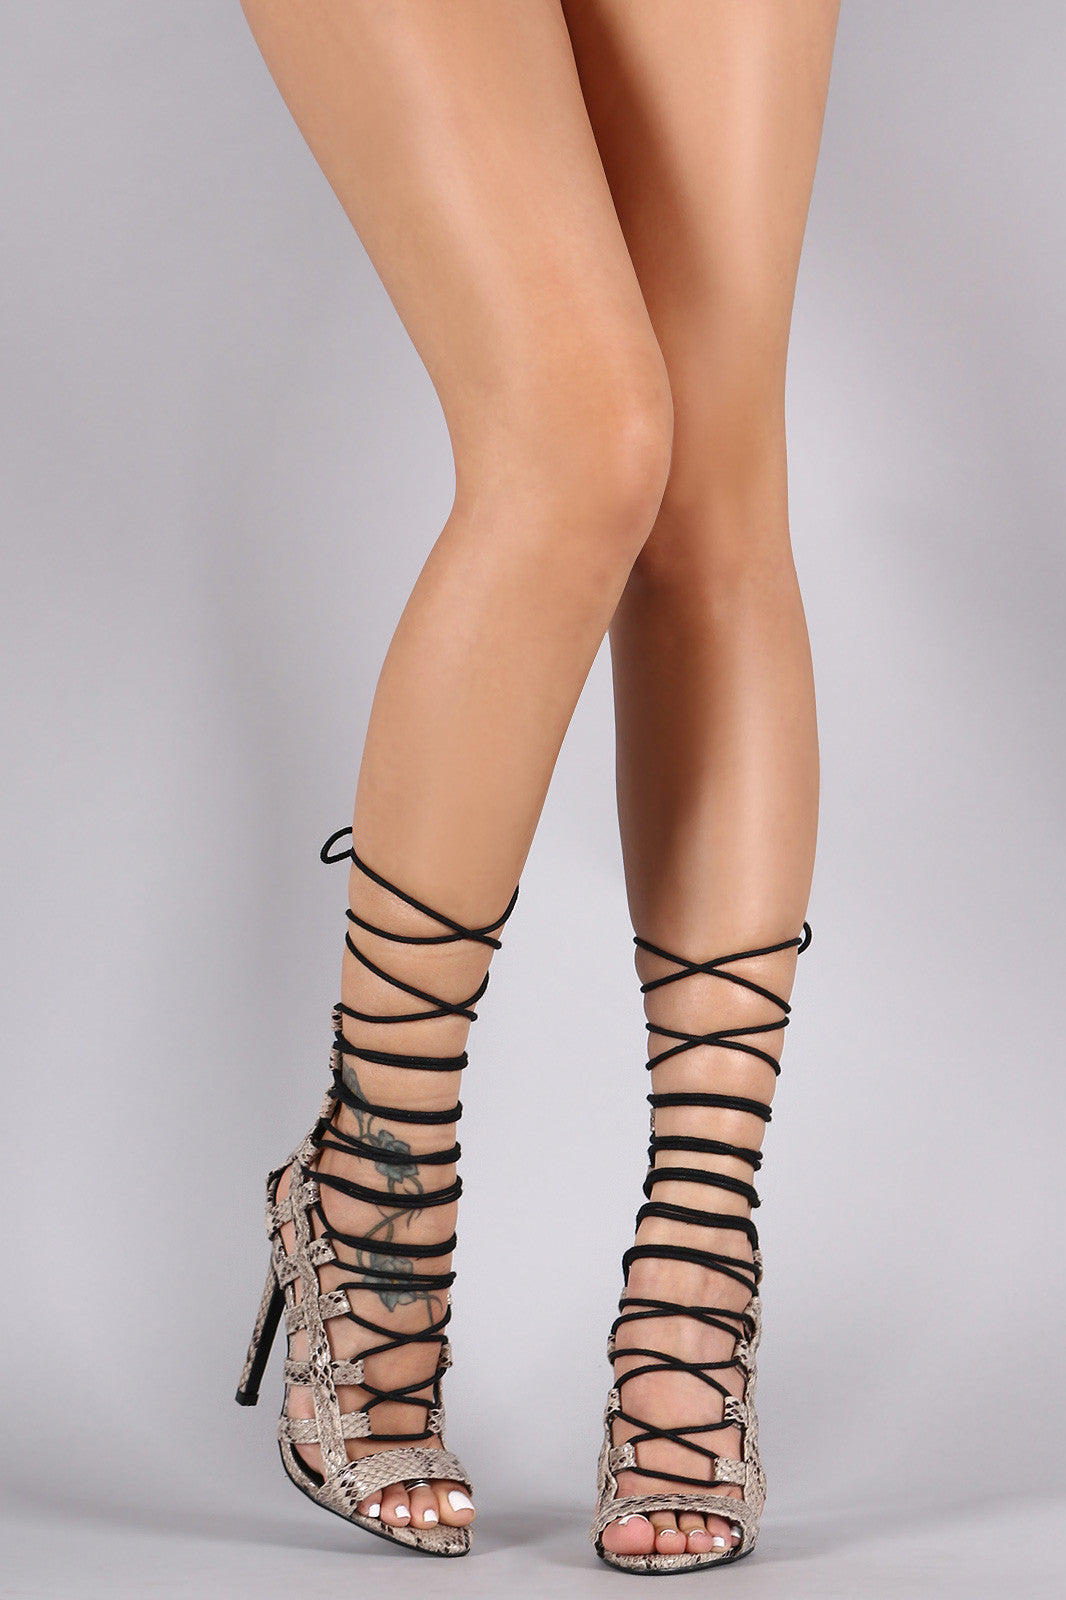 Python Strappy Caged Lace Up Stiletto Heel - Thick 'N' Curvy Shop - 1